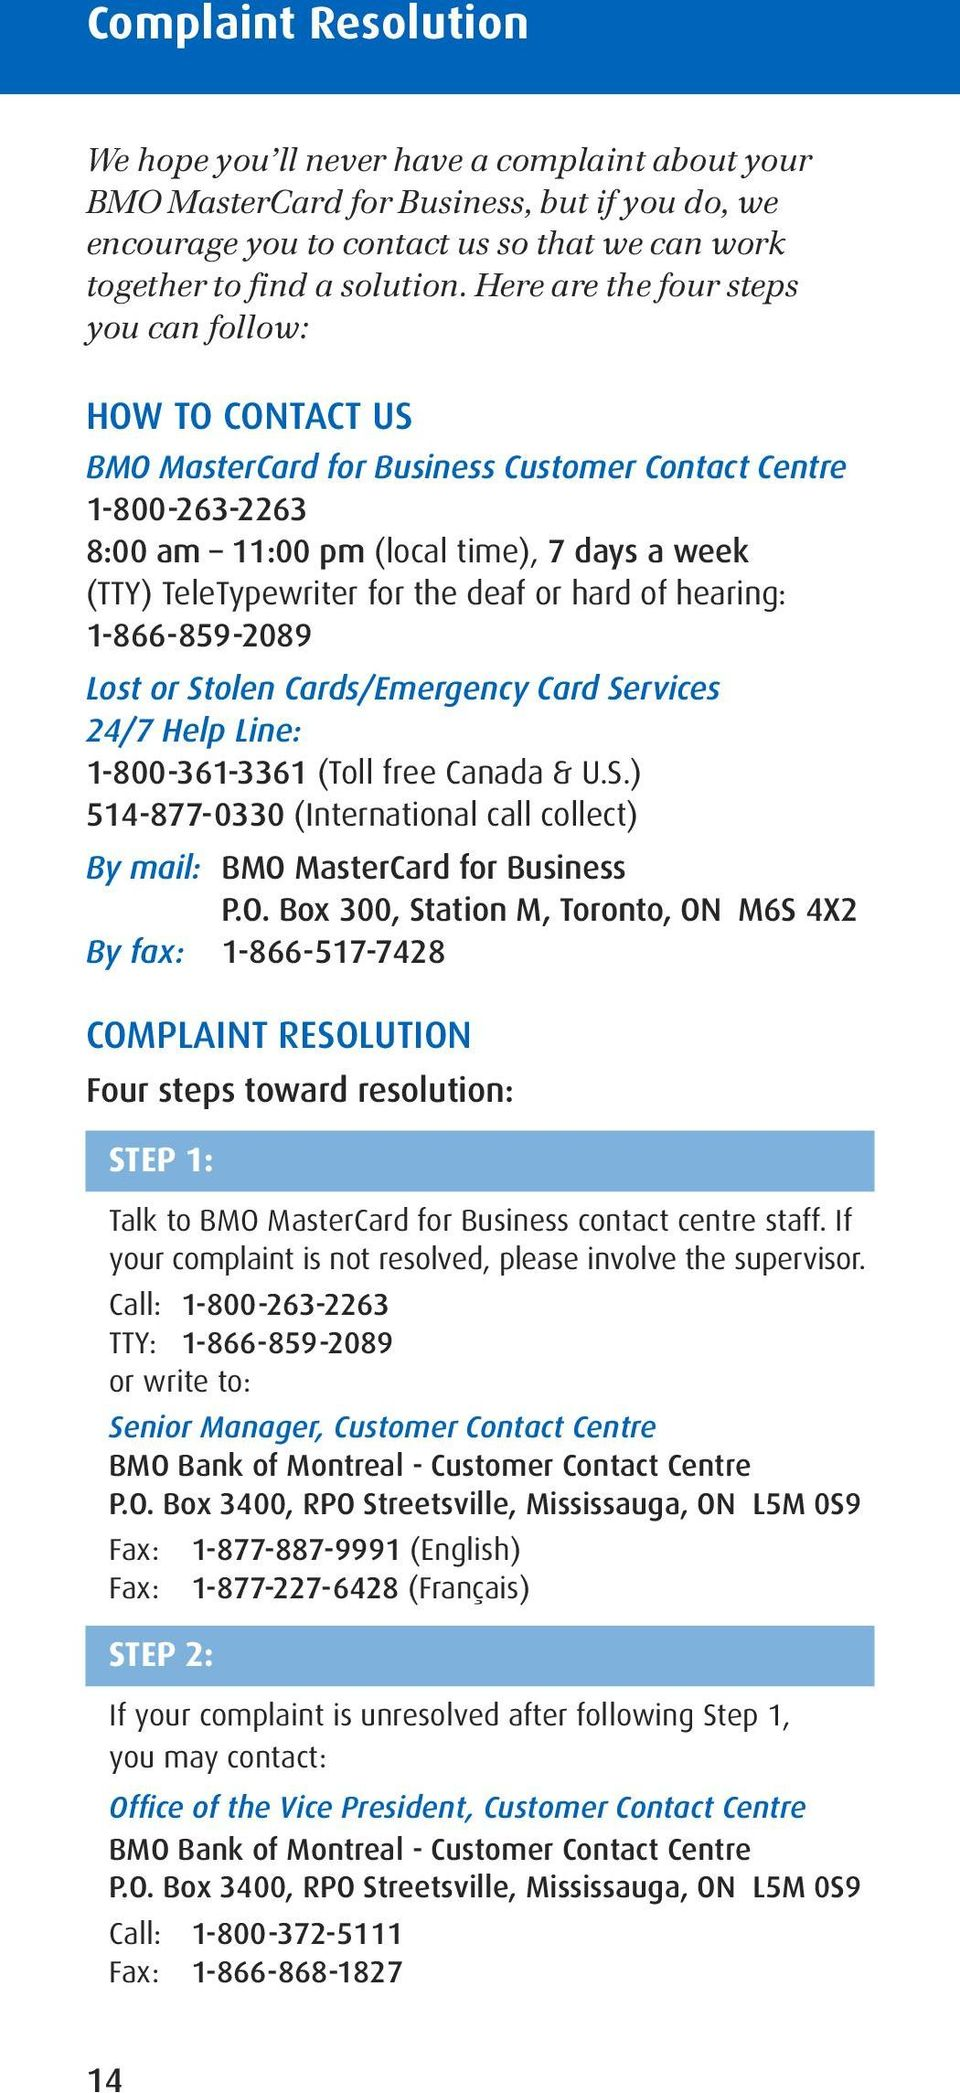 deaf or hard of hearing: 1-866-859-2089 Lost or Stolen Cards/Emergency Card Services 24/7 Help Line: 1-800-361-3361 (Toll free Canada & U.S.) 514-877-0330 (International call collect) By mail: BMO MasterCard for Business P.